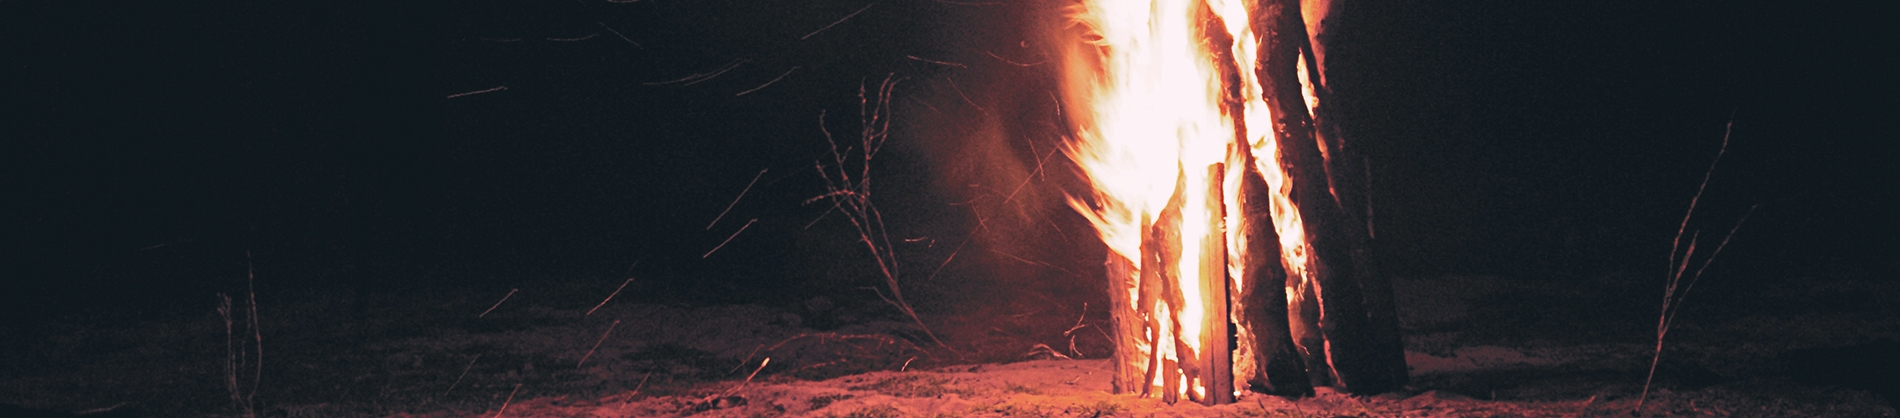 A pile of wood on fire on a beach